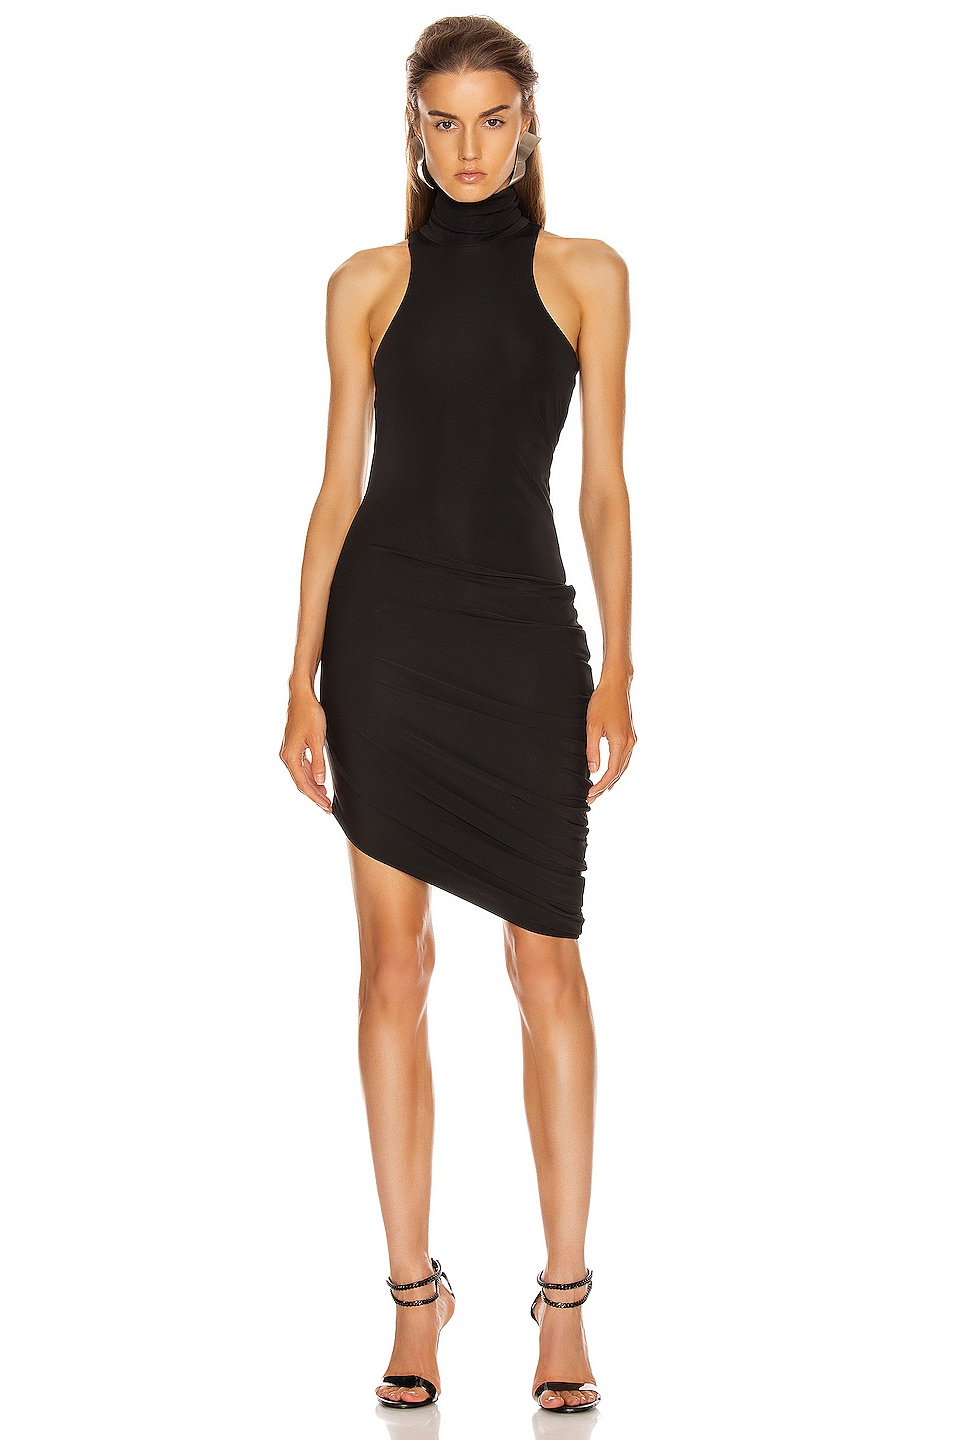 Image 1 of Cinq a Sept Alexis Dress in Black